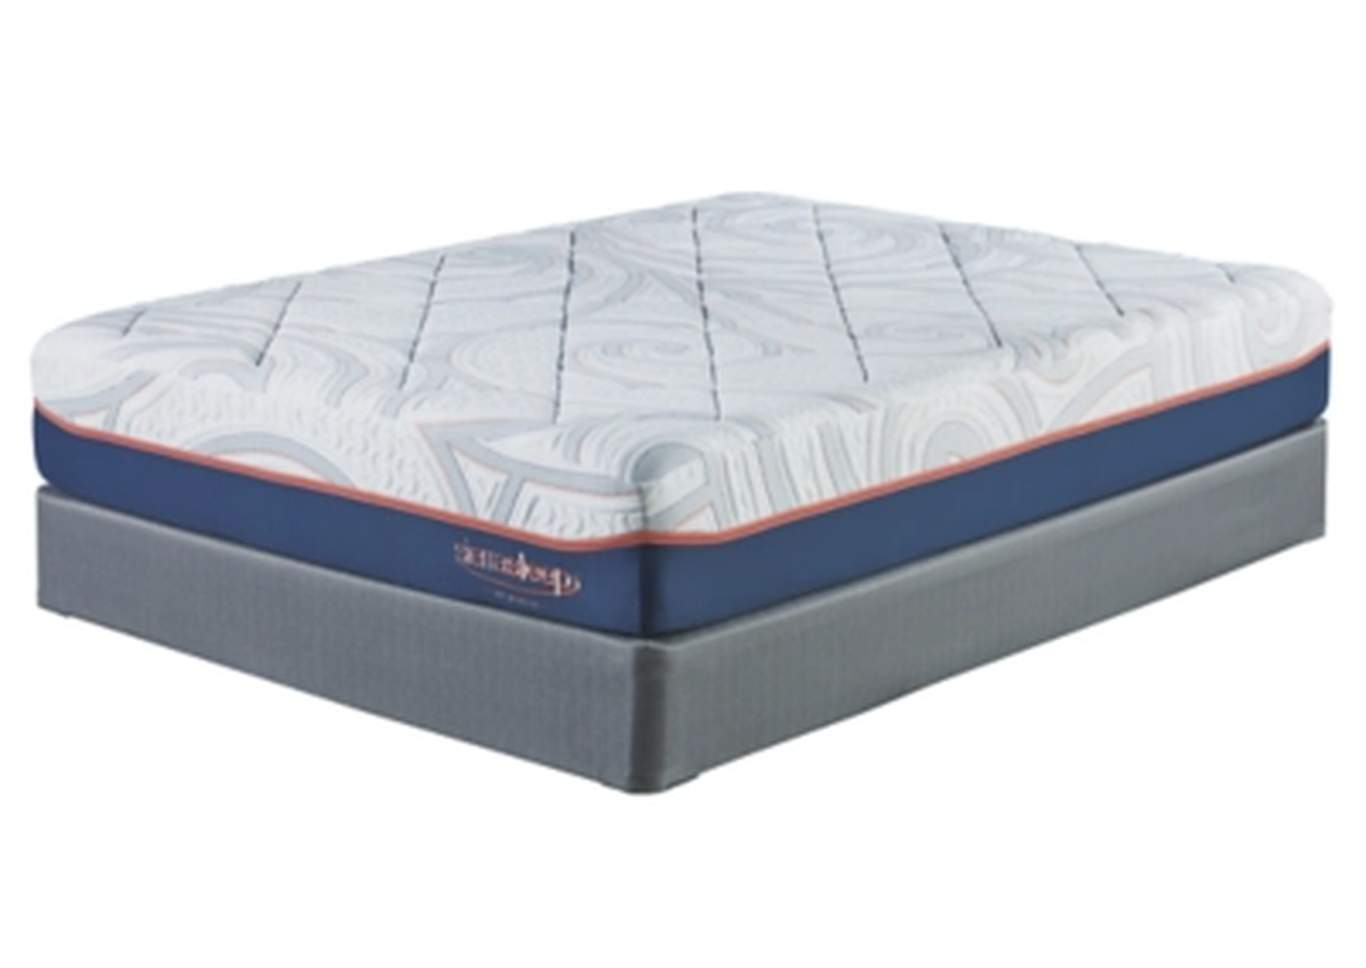 12 Inch MyGel White King Mattress,Sierra Sleep by Ashley